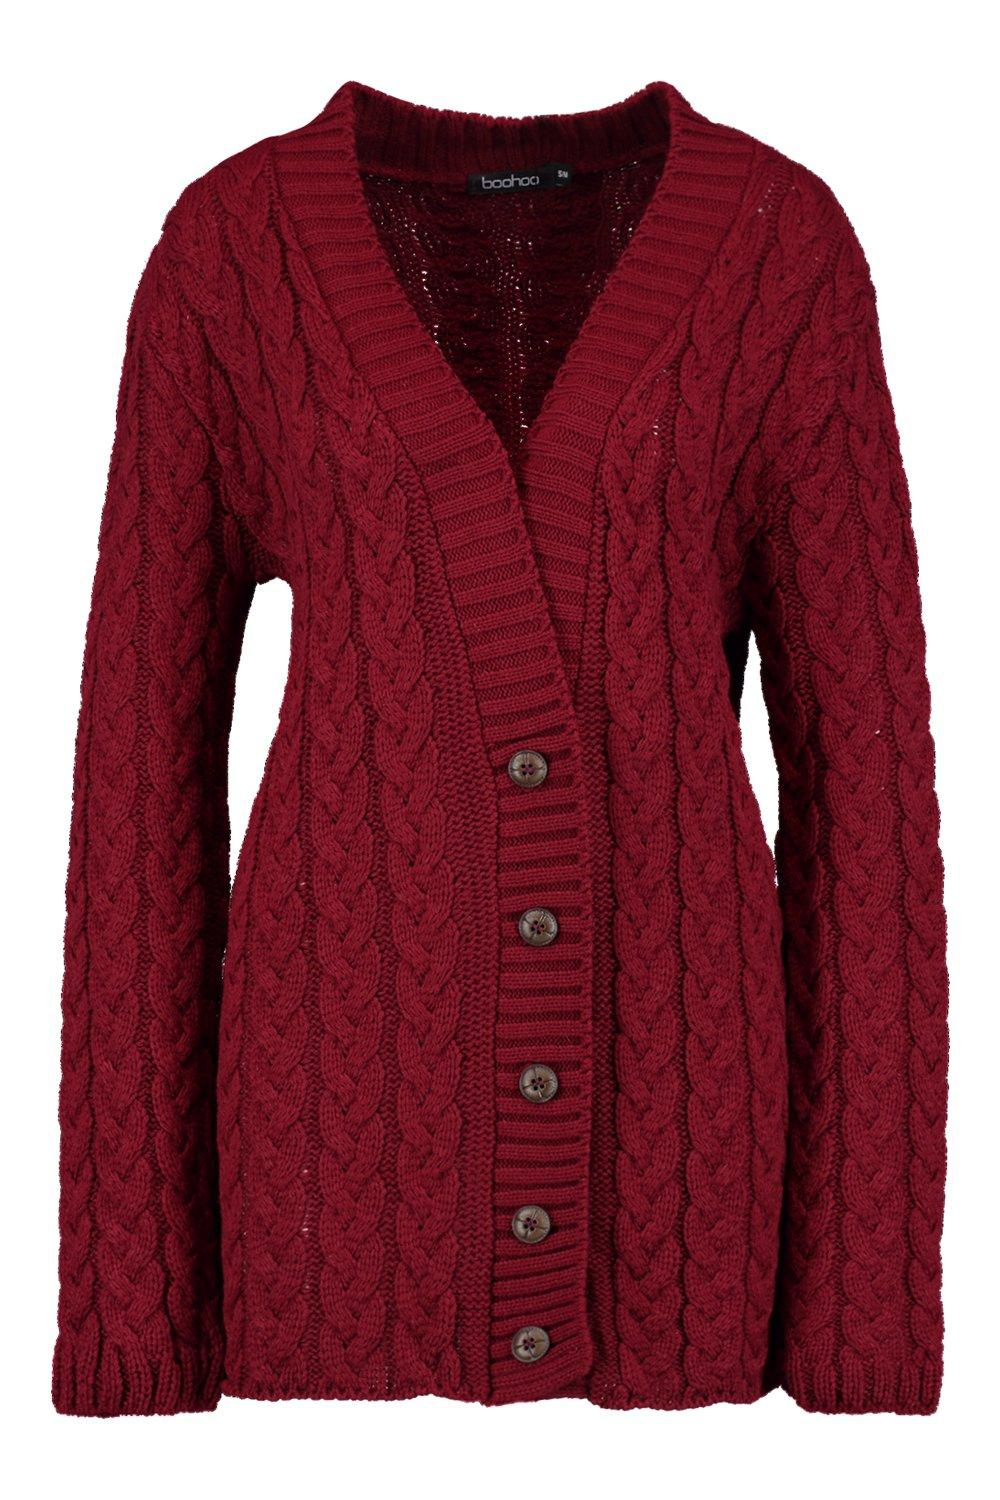 Knitting Cardigan For Ladies : Boohoo womens lucy cable knit cardigan ebay